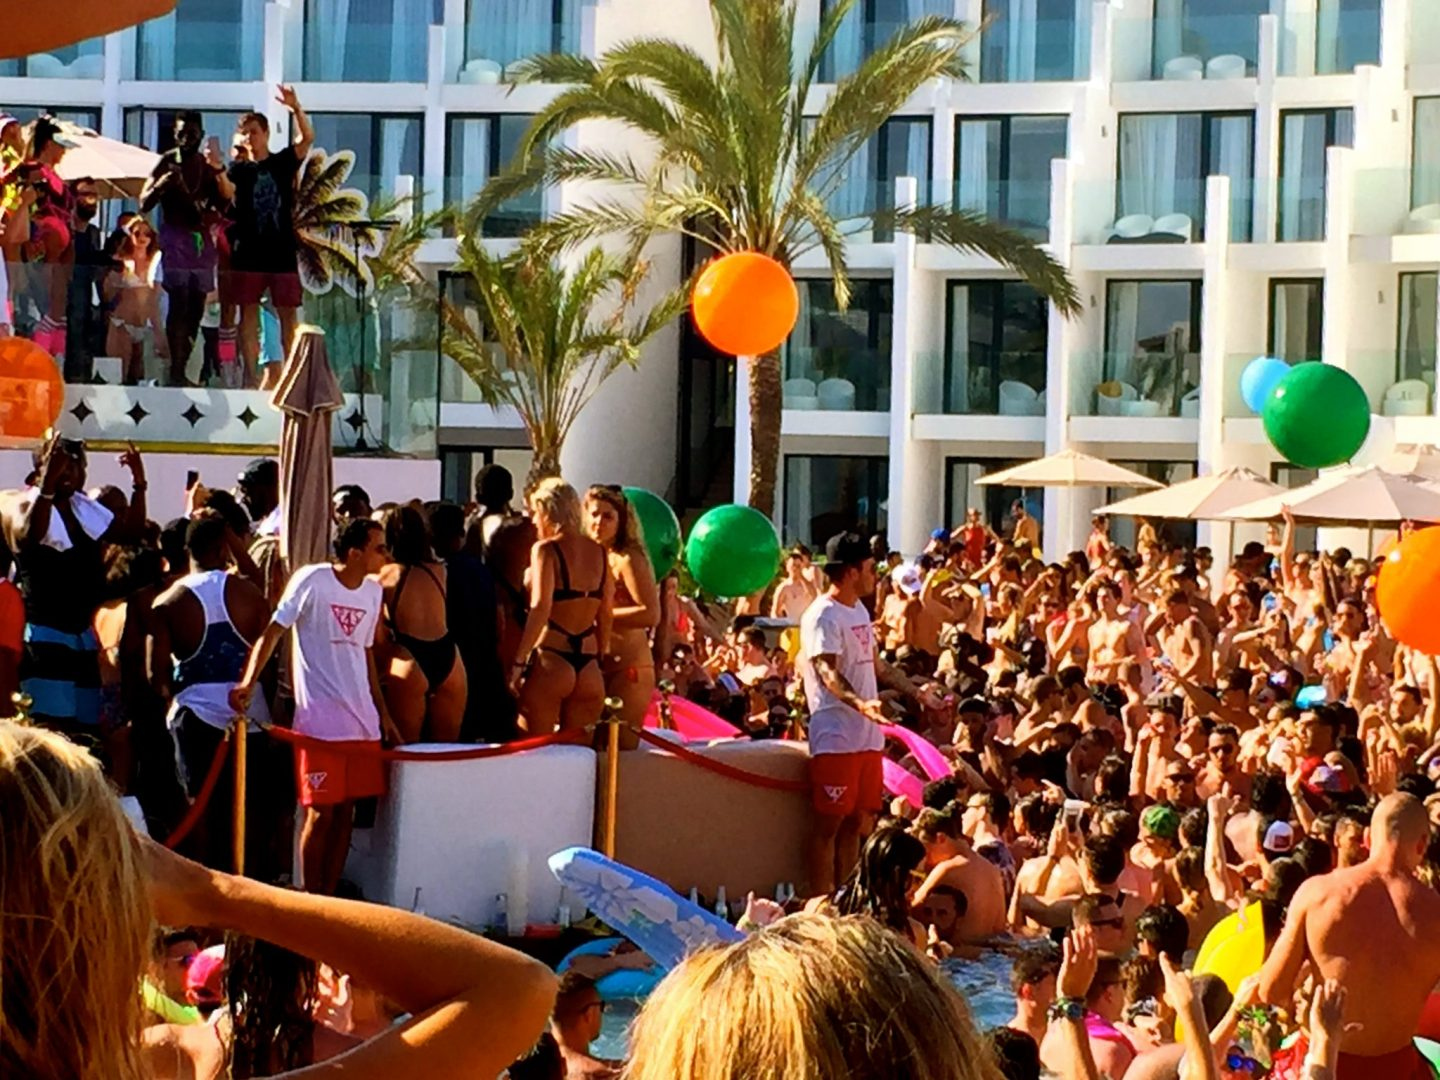 Martin Garrix at Hard Rock Hotel Ibiza pool party